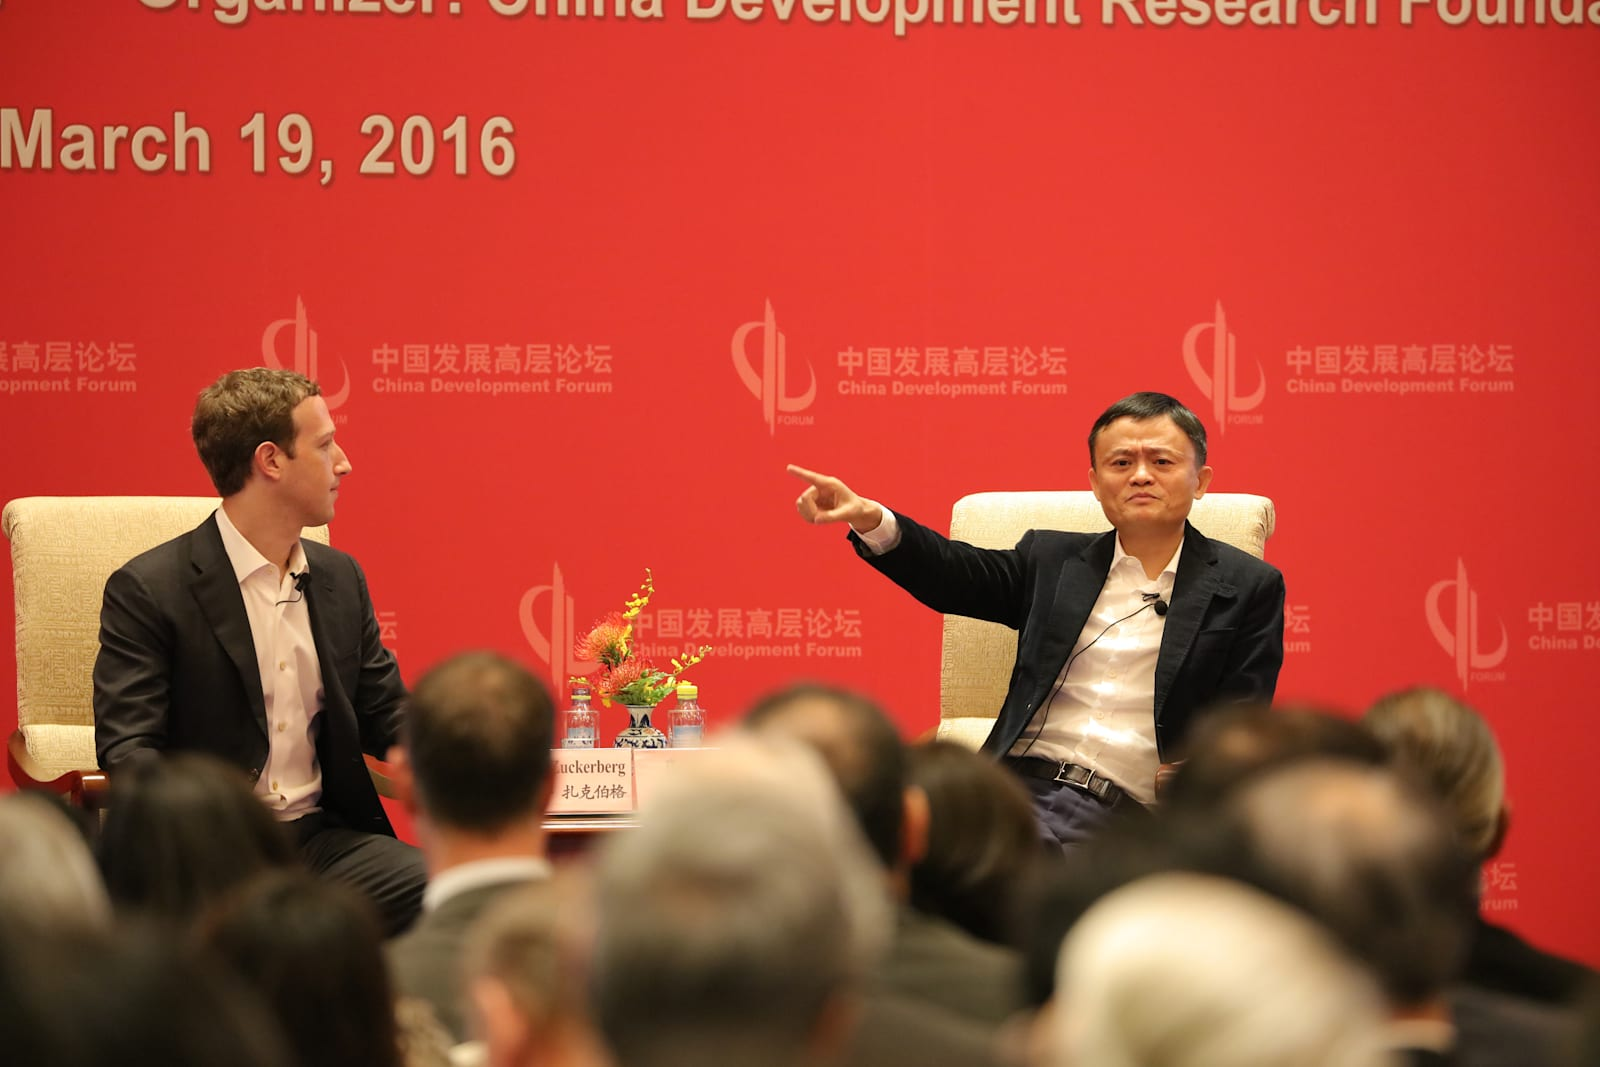 China Development Forum 2016 In Beijing